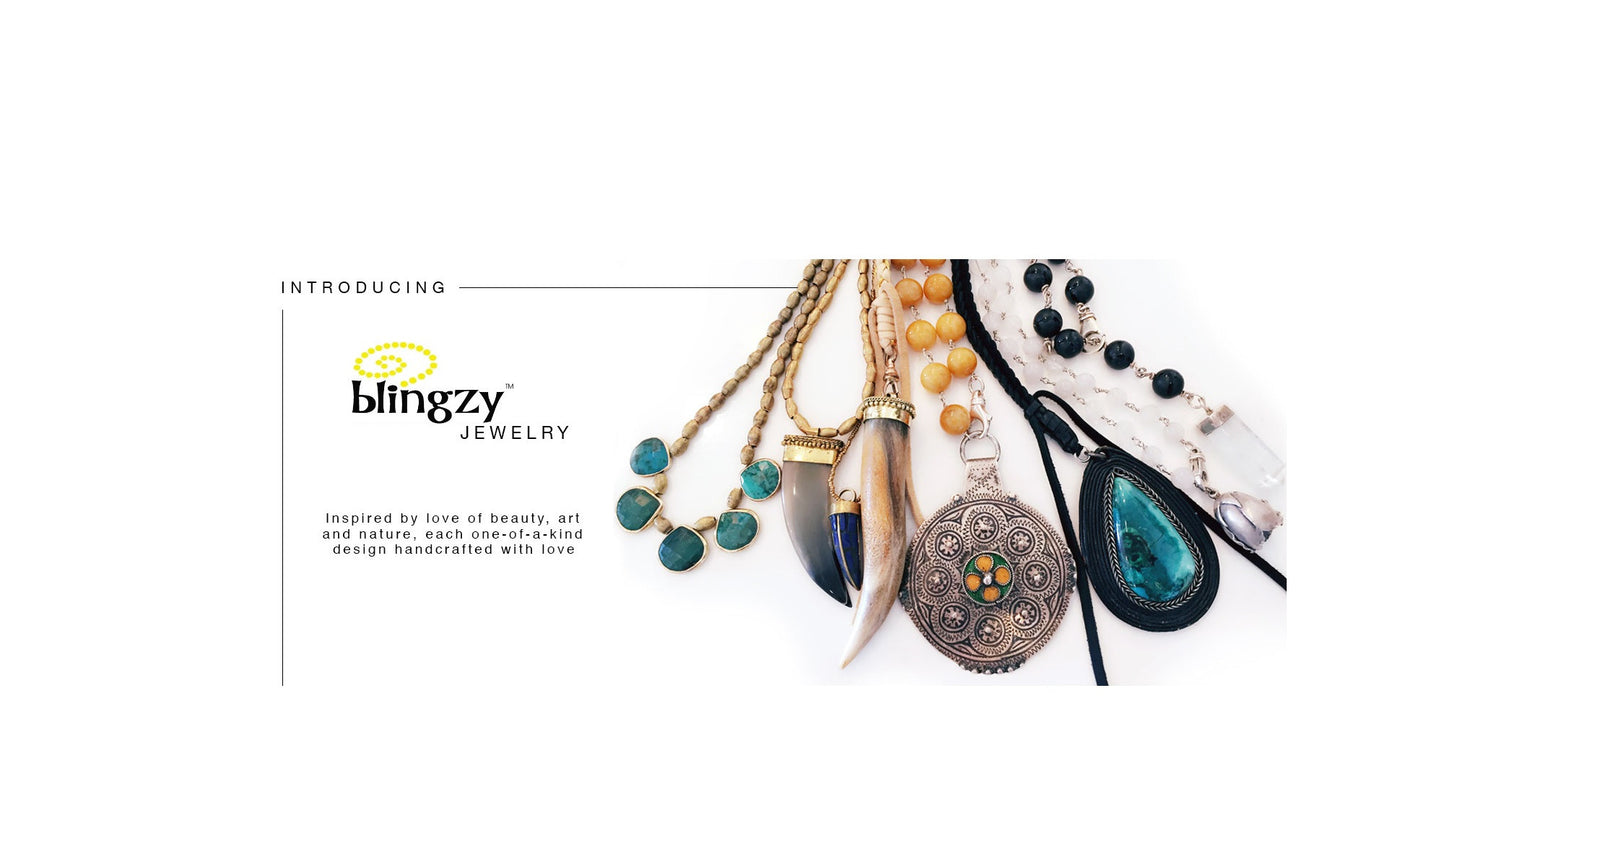 Jewelry by Blingzy